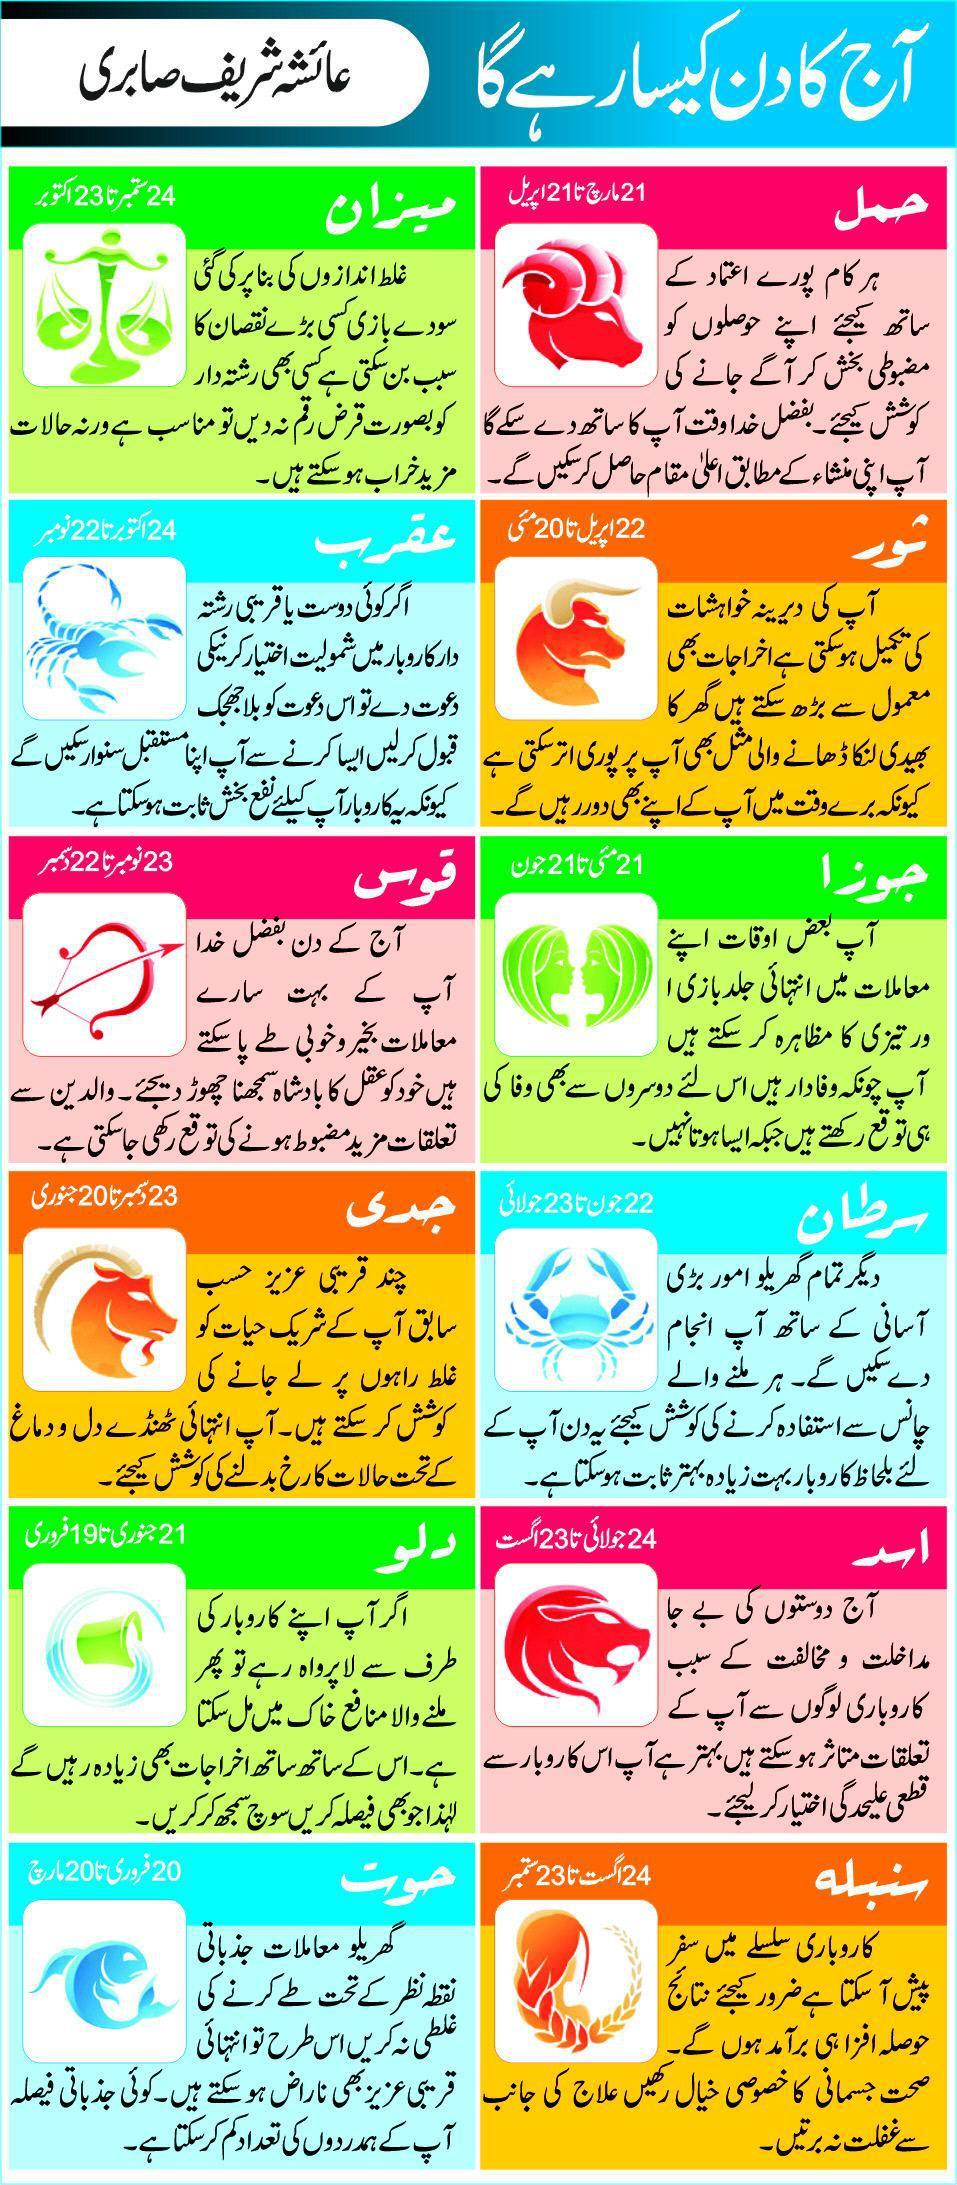 Daily Horoscope in Urdu Today 25 October 2015